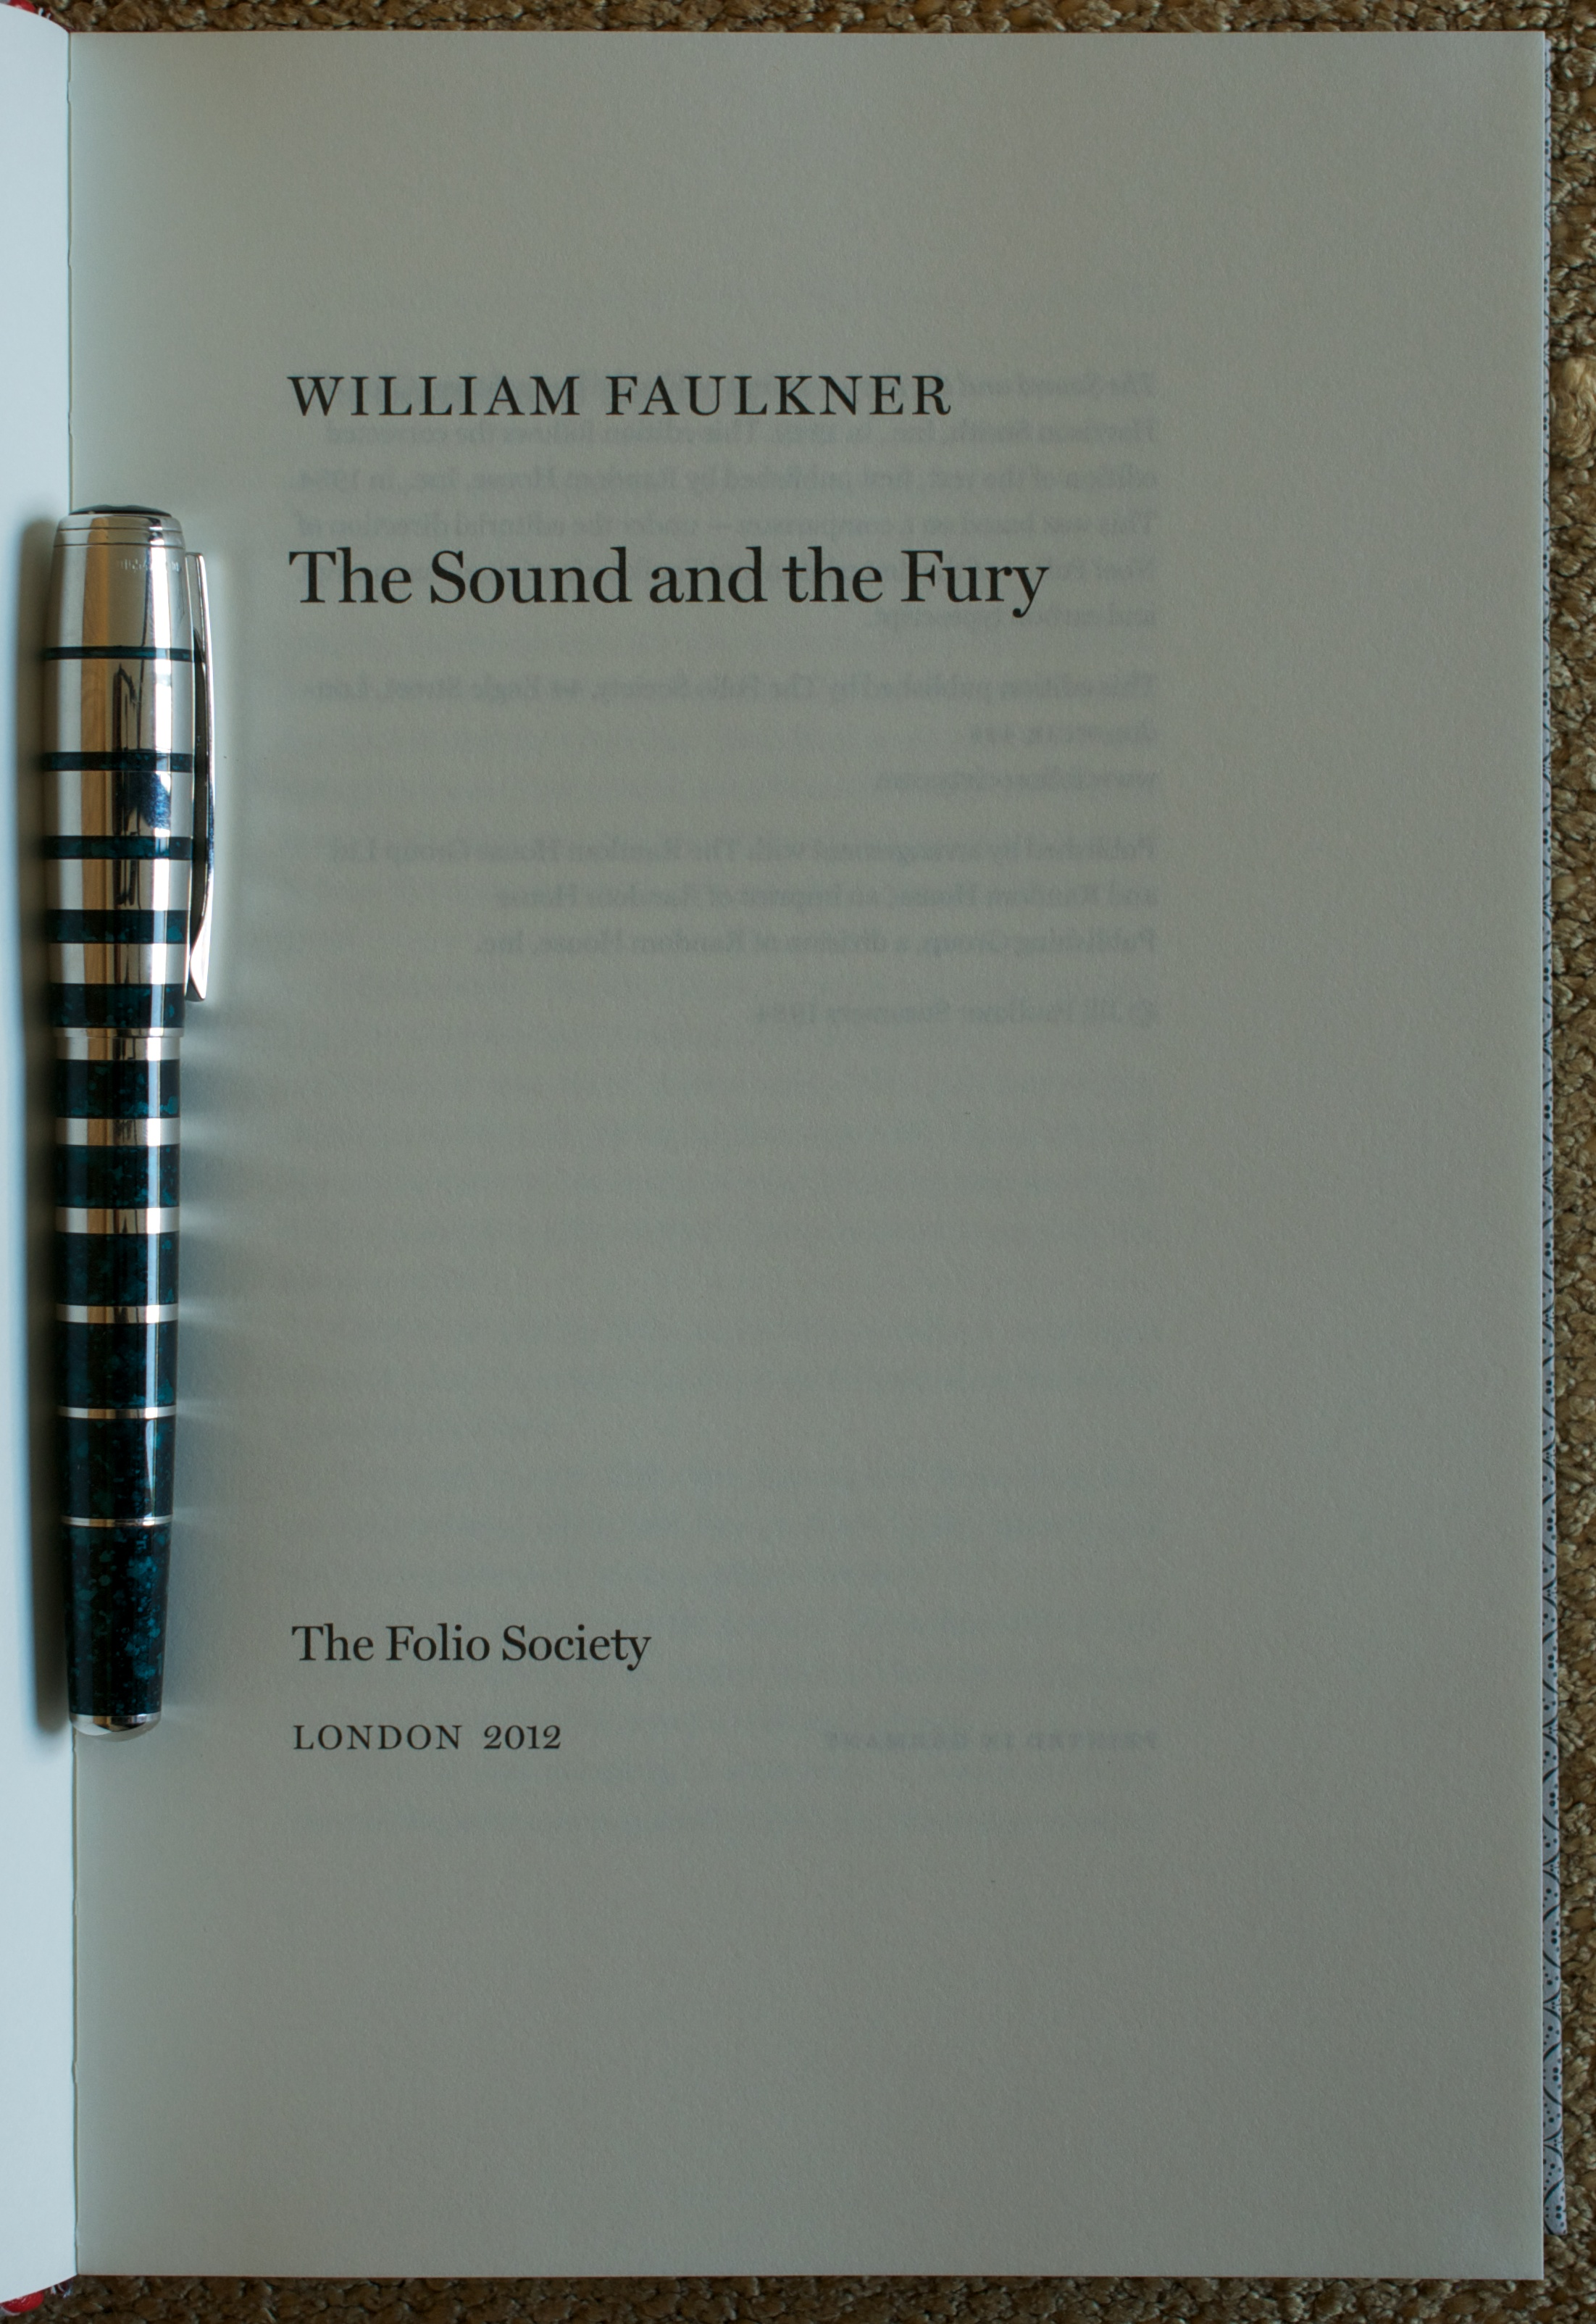 the sound and the fury by william faulkner published by the folio sound and the fury 2